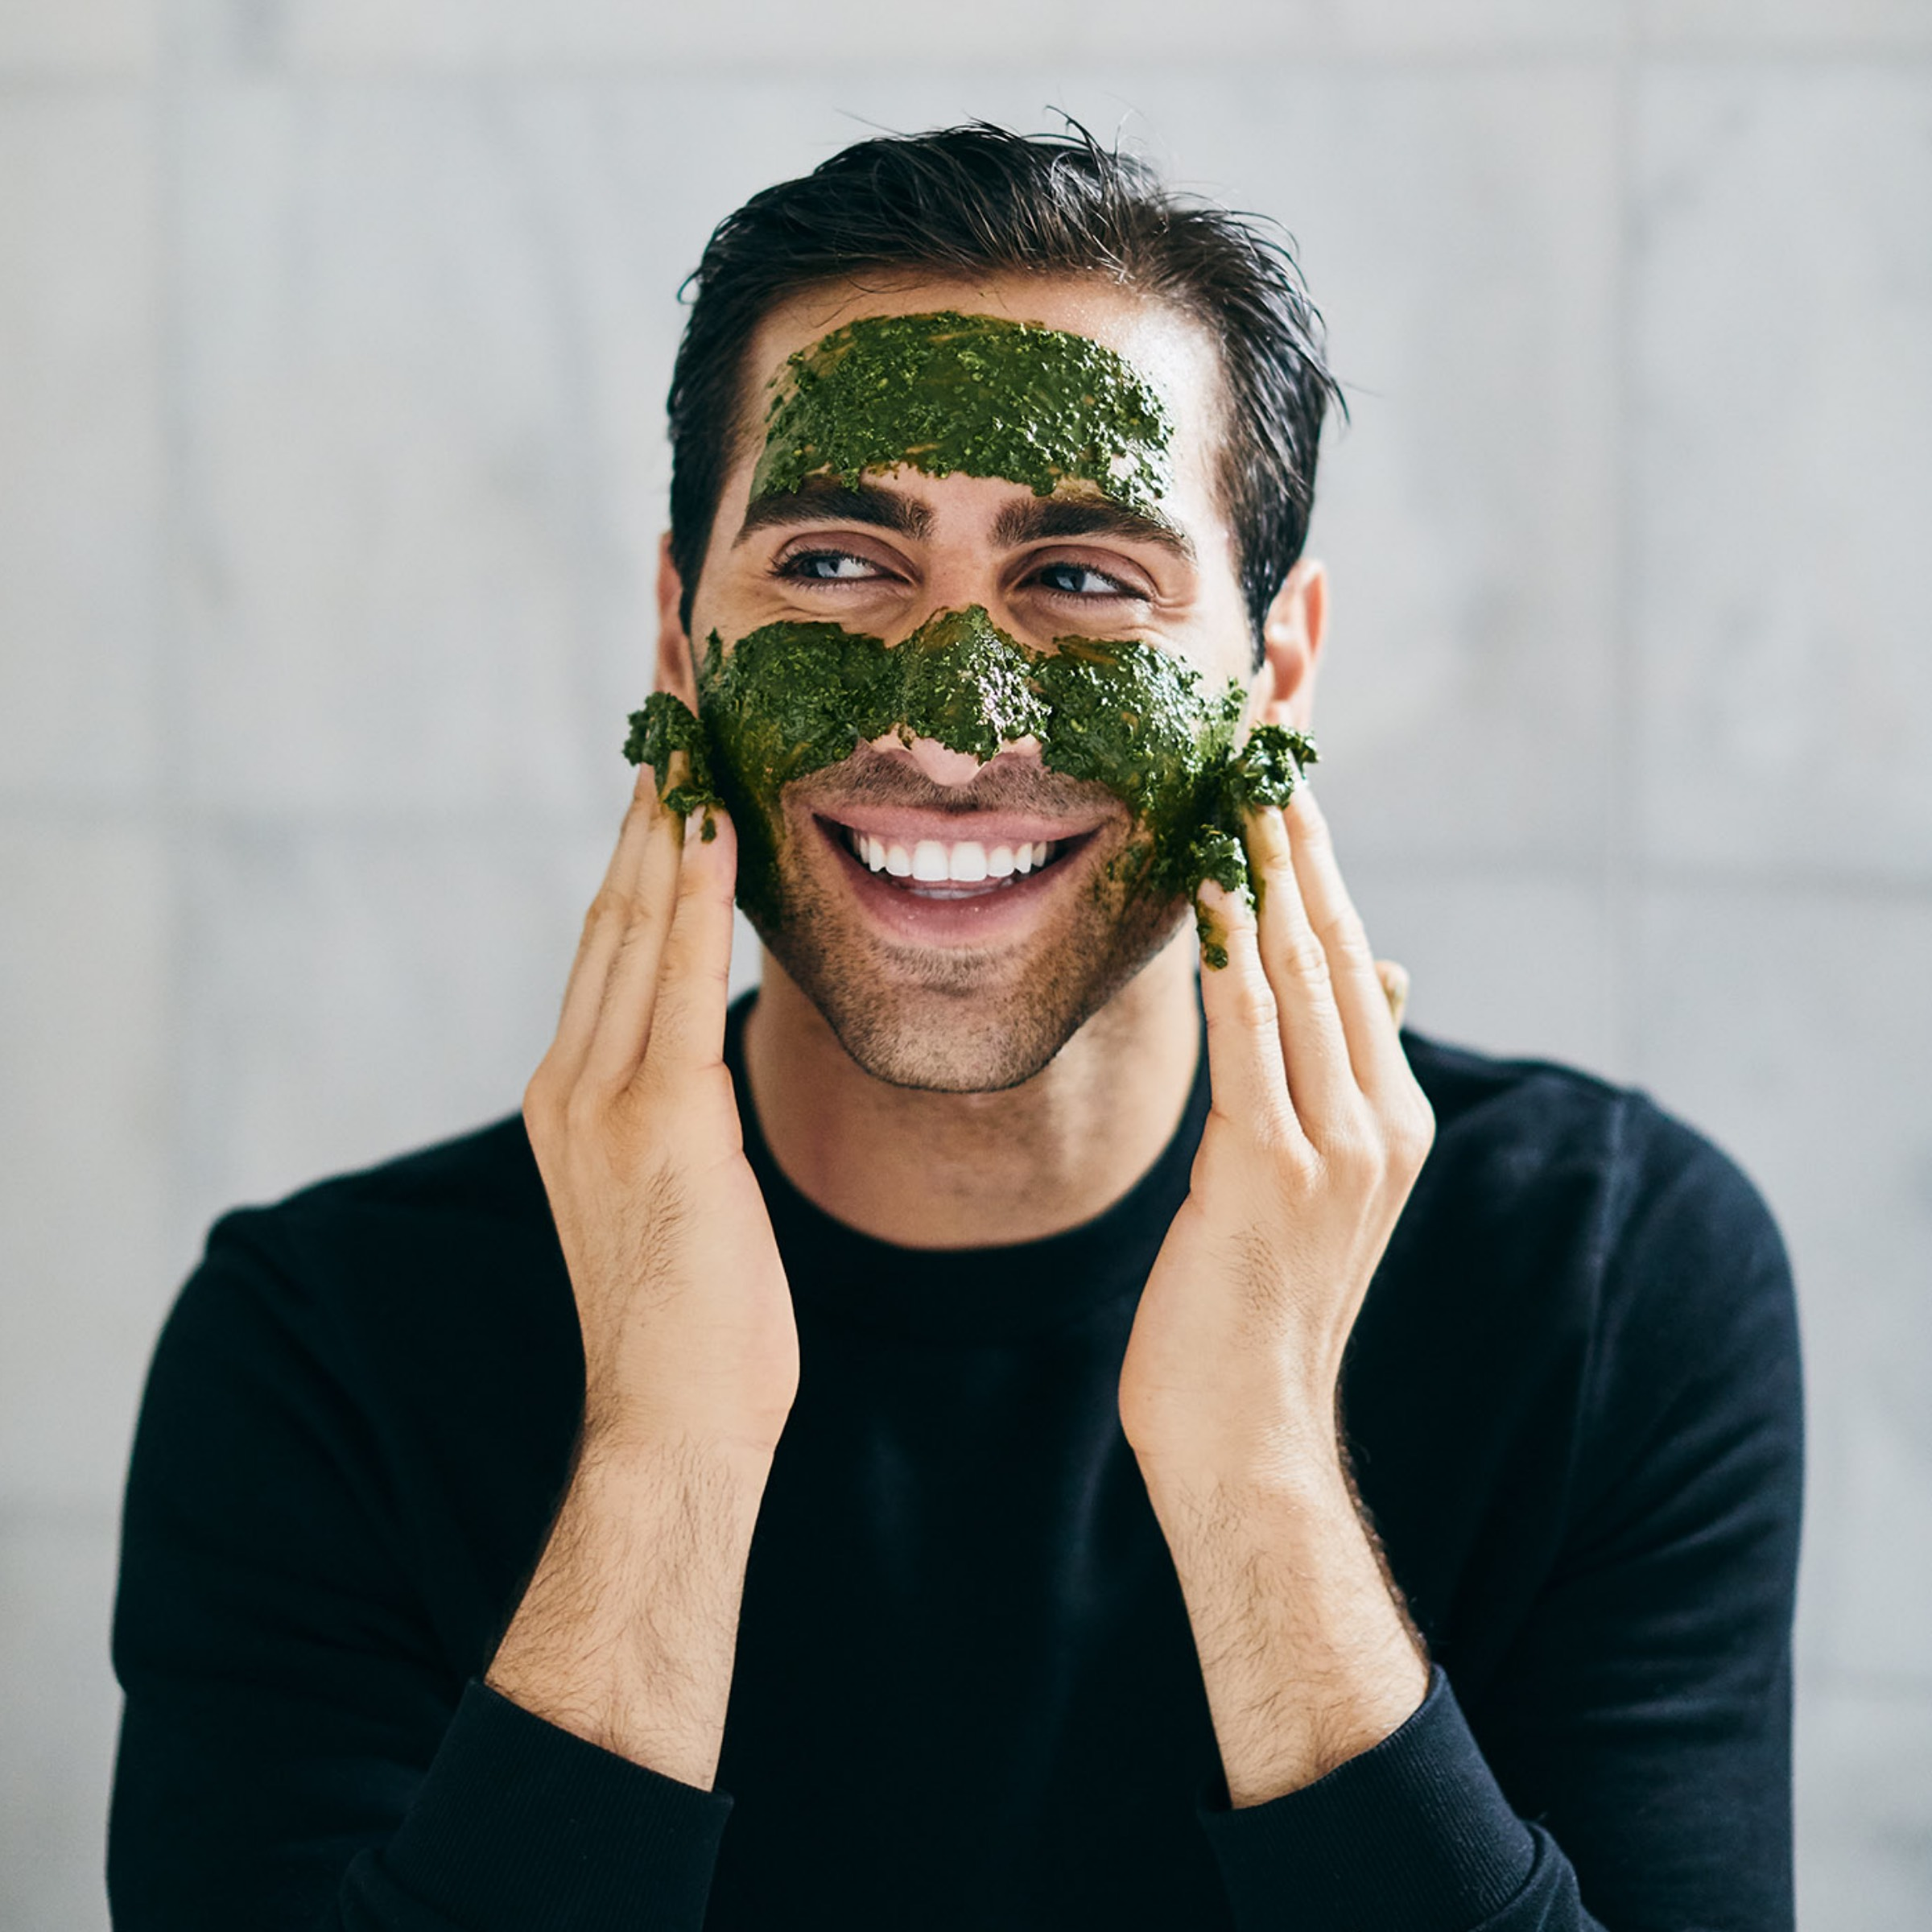 A person smiling while applying the matcha face mask in a bathroom